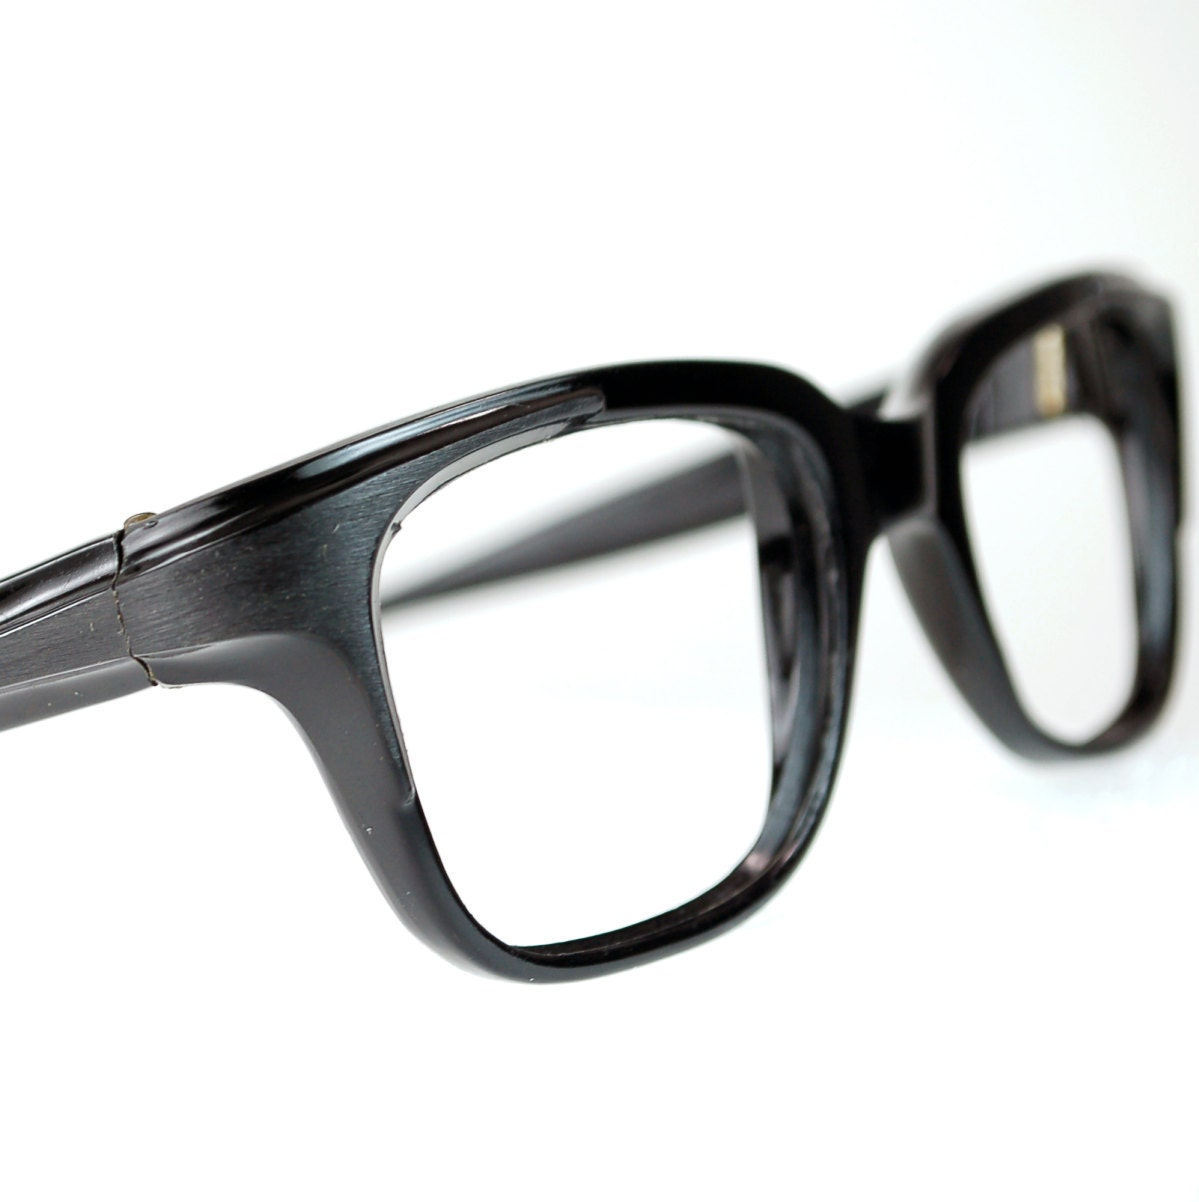 Glasses Frames Thick Black : Black Horn Rim Eyeglasses Frames Mad Men Black Thick Squared